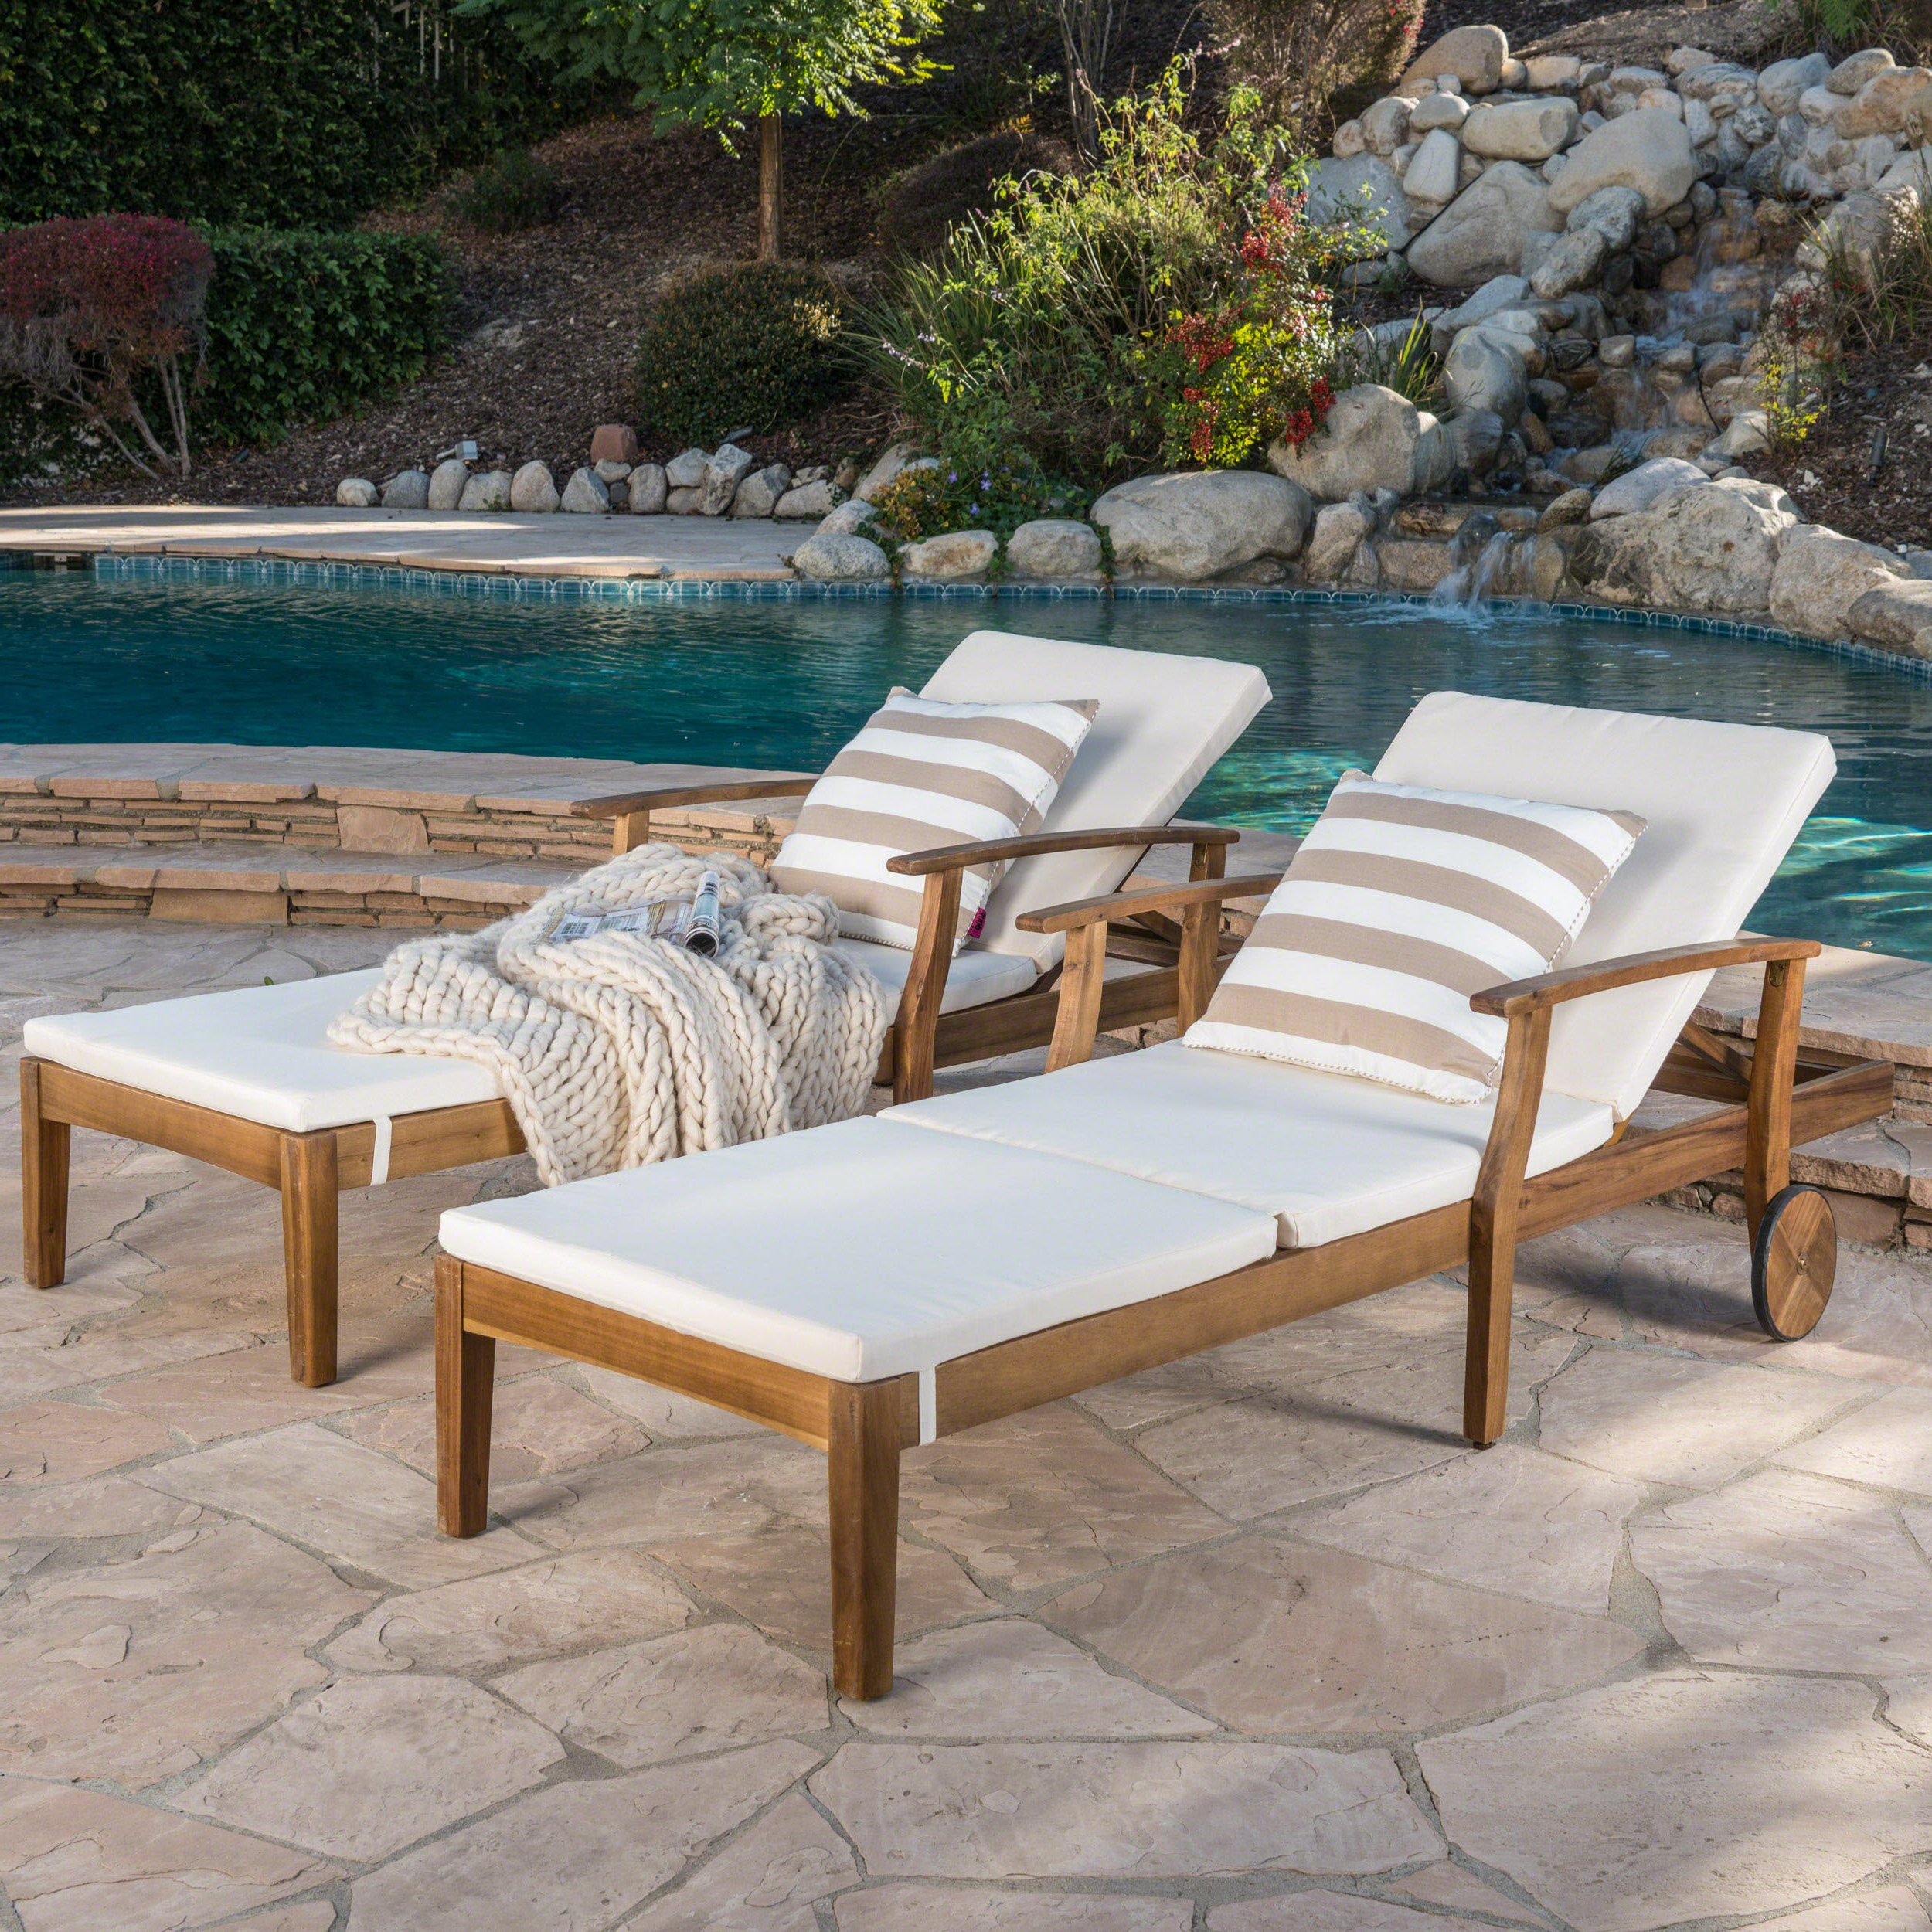 Perla Outdoor Acacia Wood Chaise Lounge With Cushion (Set Of 2) Christopher Knight Home Within Fashionable Outdoor 3 Piece Acacia Wood Chaise Lounge Sets (Gallery 7 of 25)